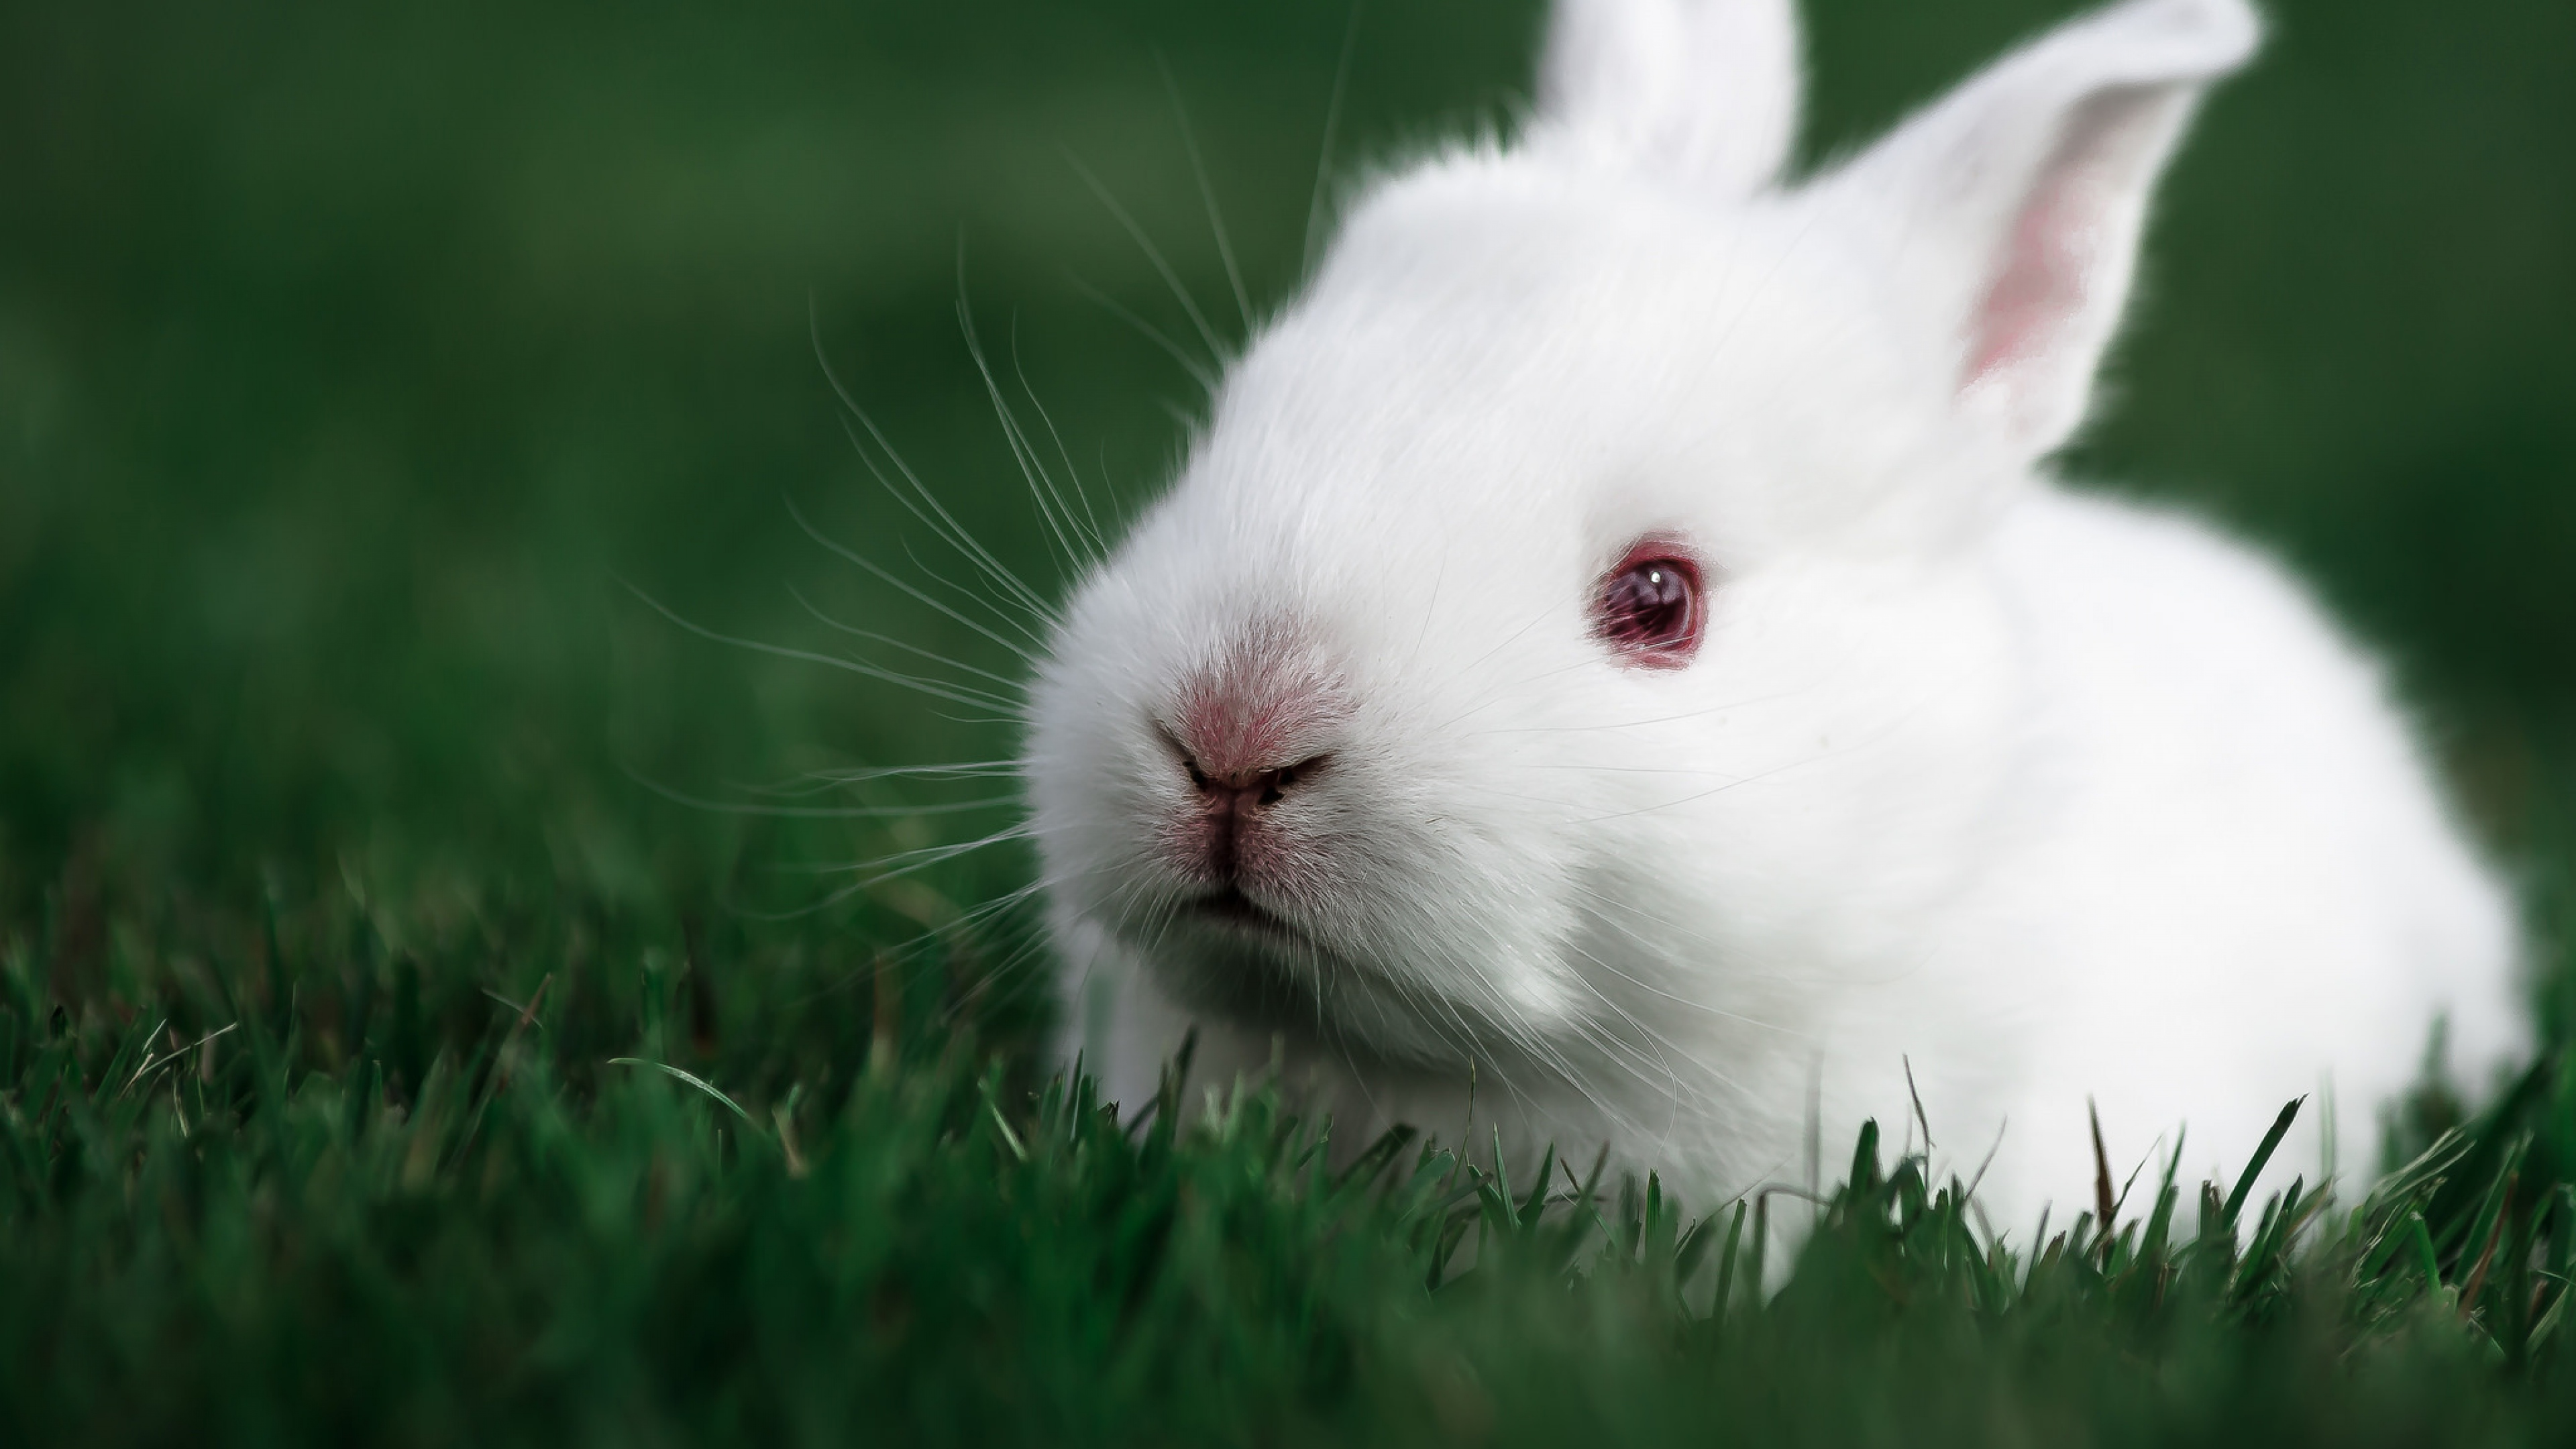 cute rabbit 4k 1542237755 - Cute Rabbit 4k - rabbit wallpapers, cute wallpapers, animals wallpapers